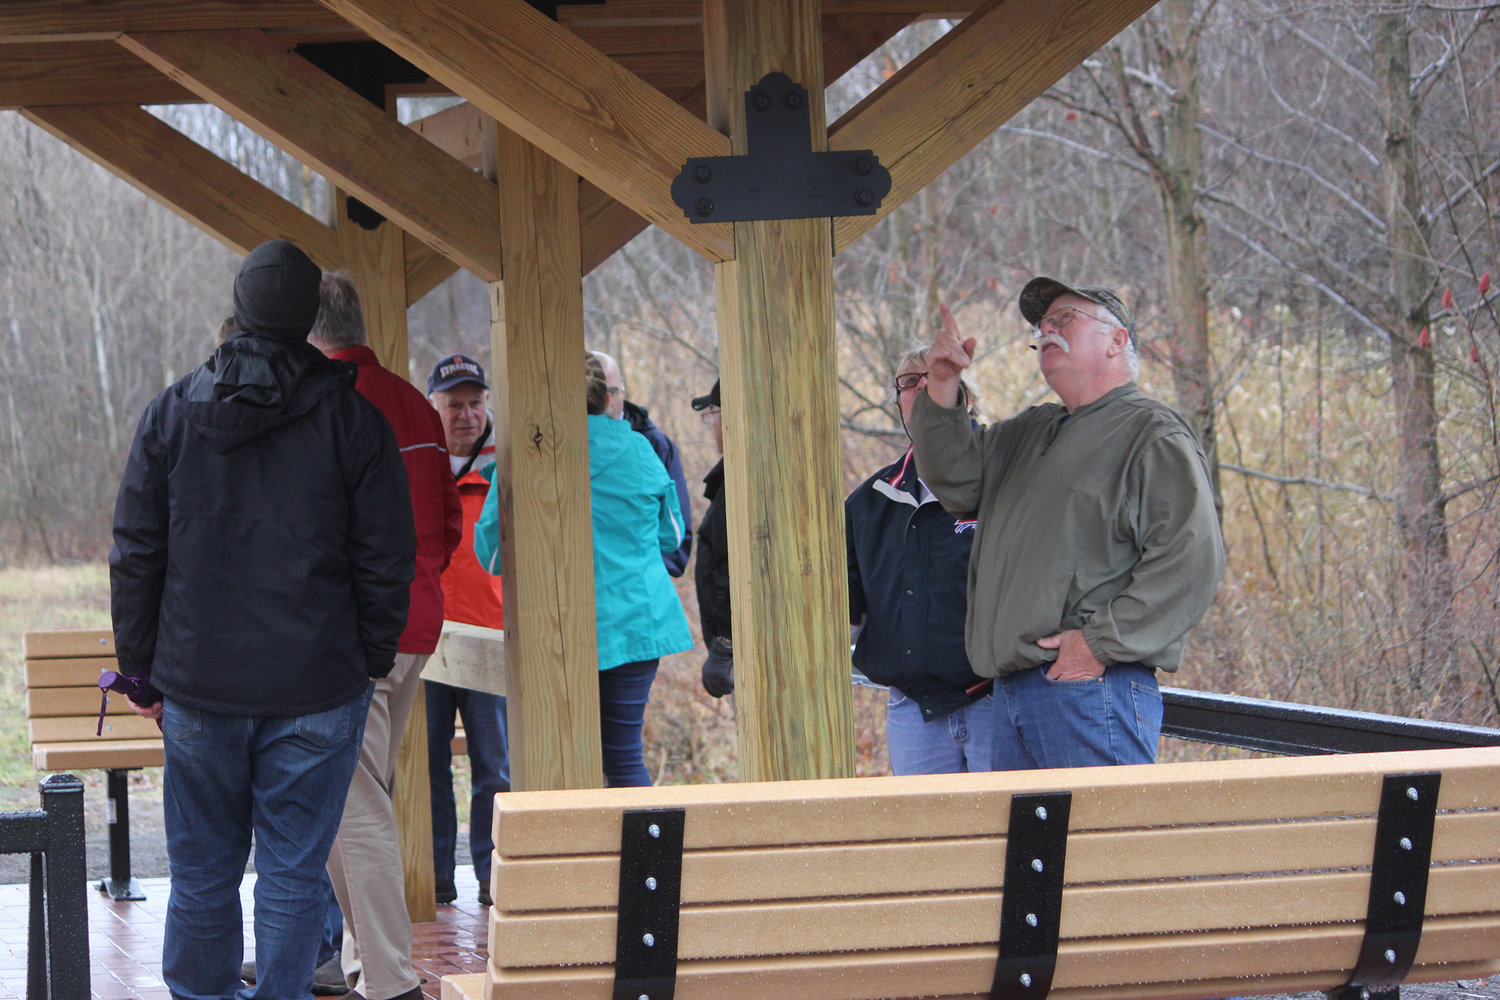 ALONG THE TRAIL — Local officials take a tour of the Lenox Rail Trail after the ribbon cutting ceremony on Thursday, Nov. 22.